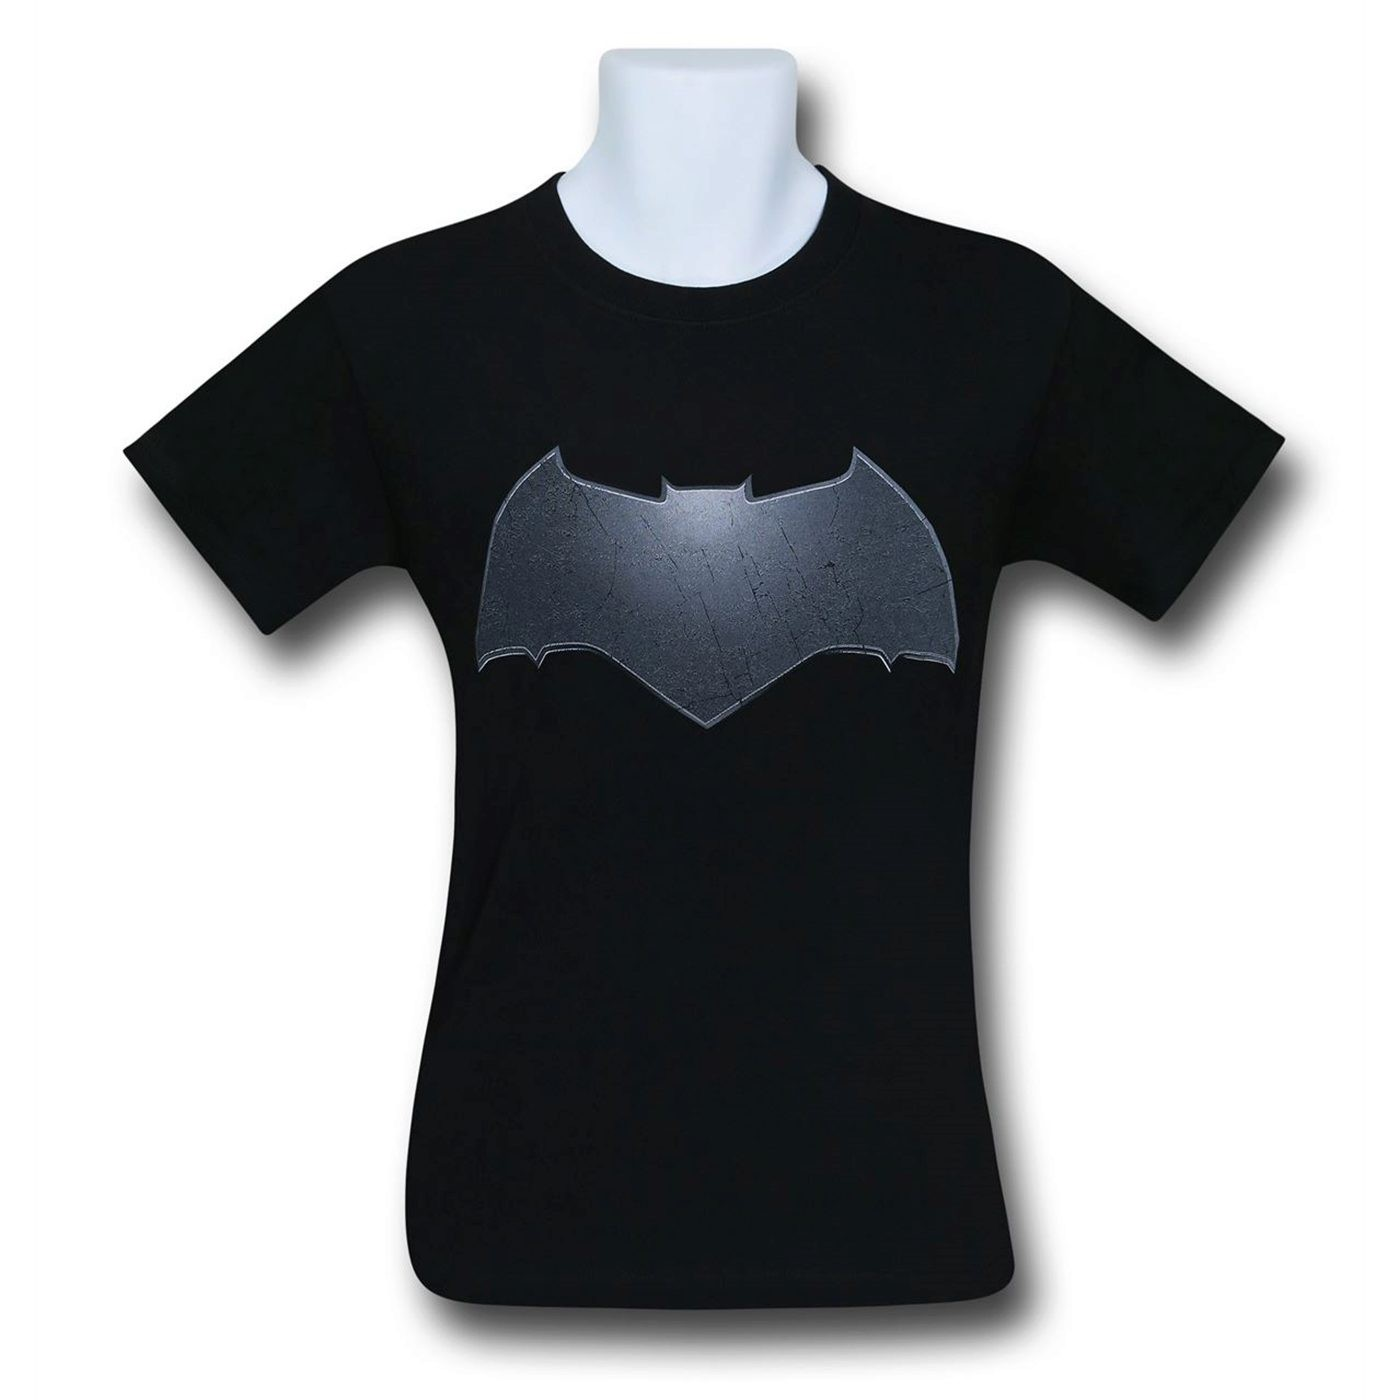 Batman Vs Superman Beveled Bat Symbol T-Shirt